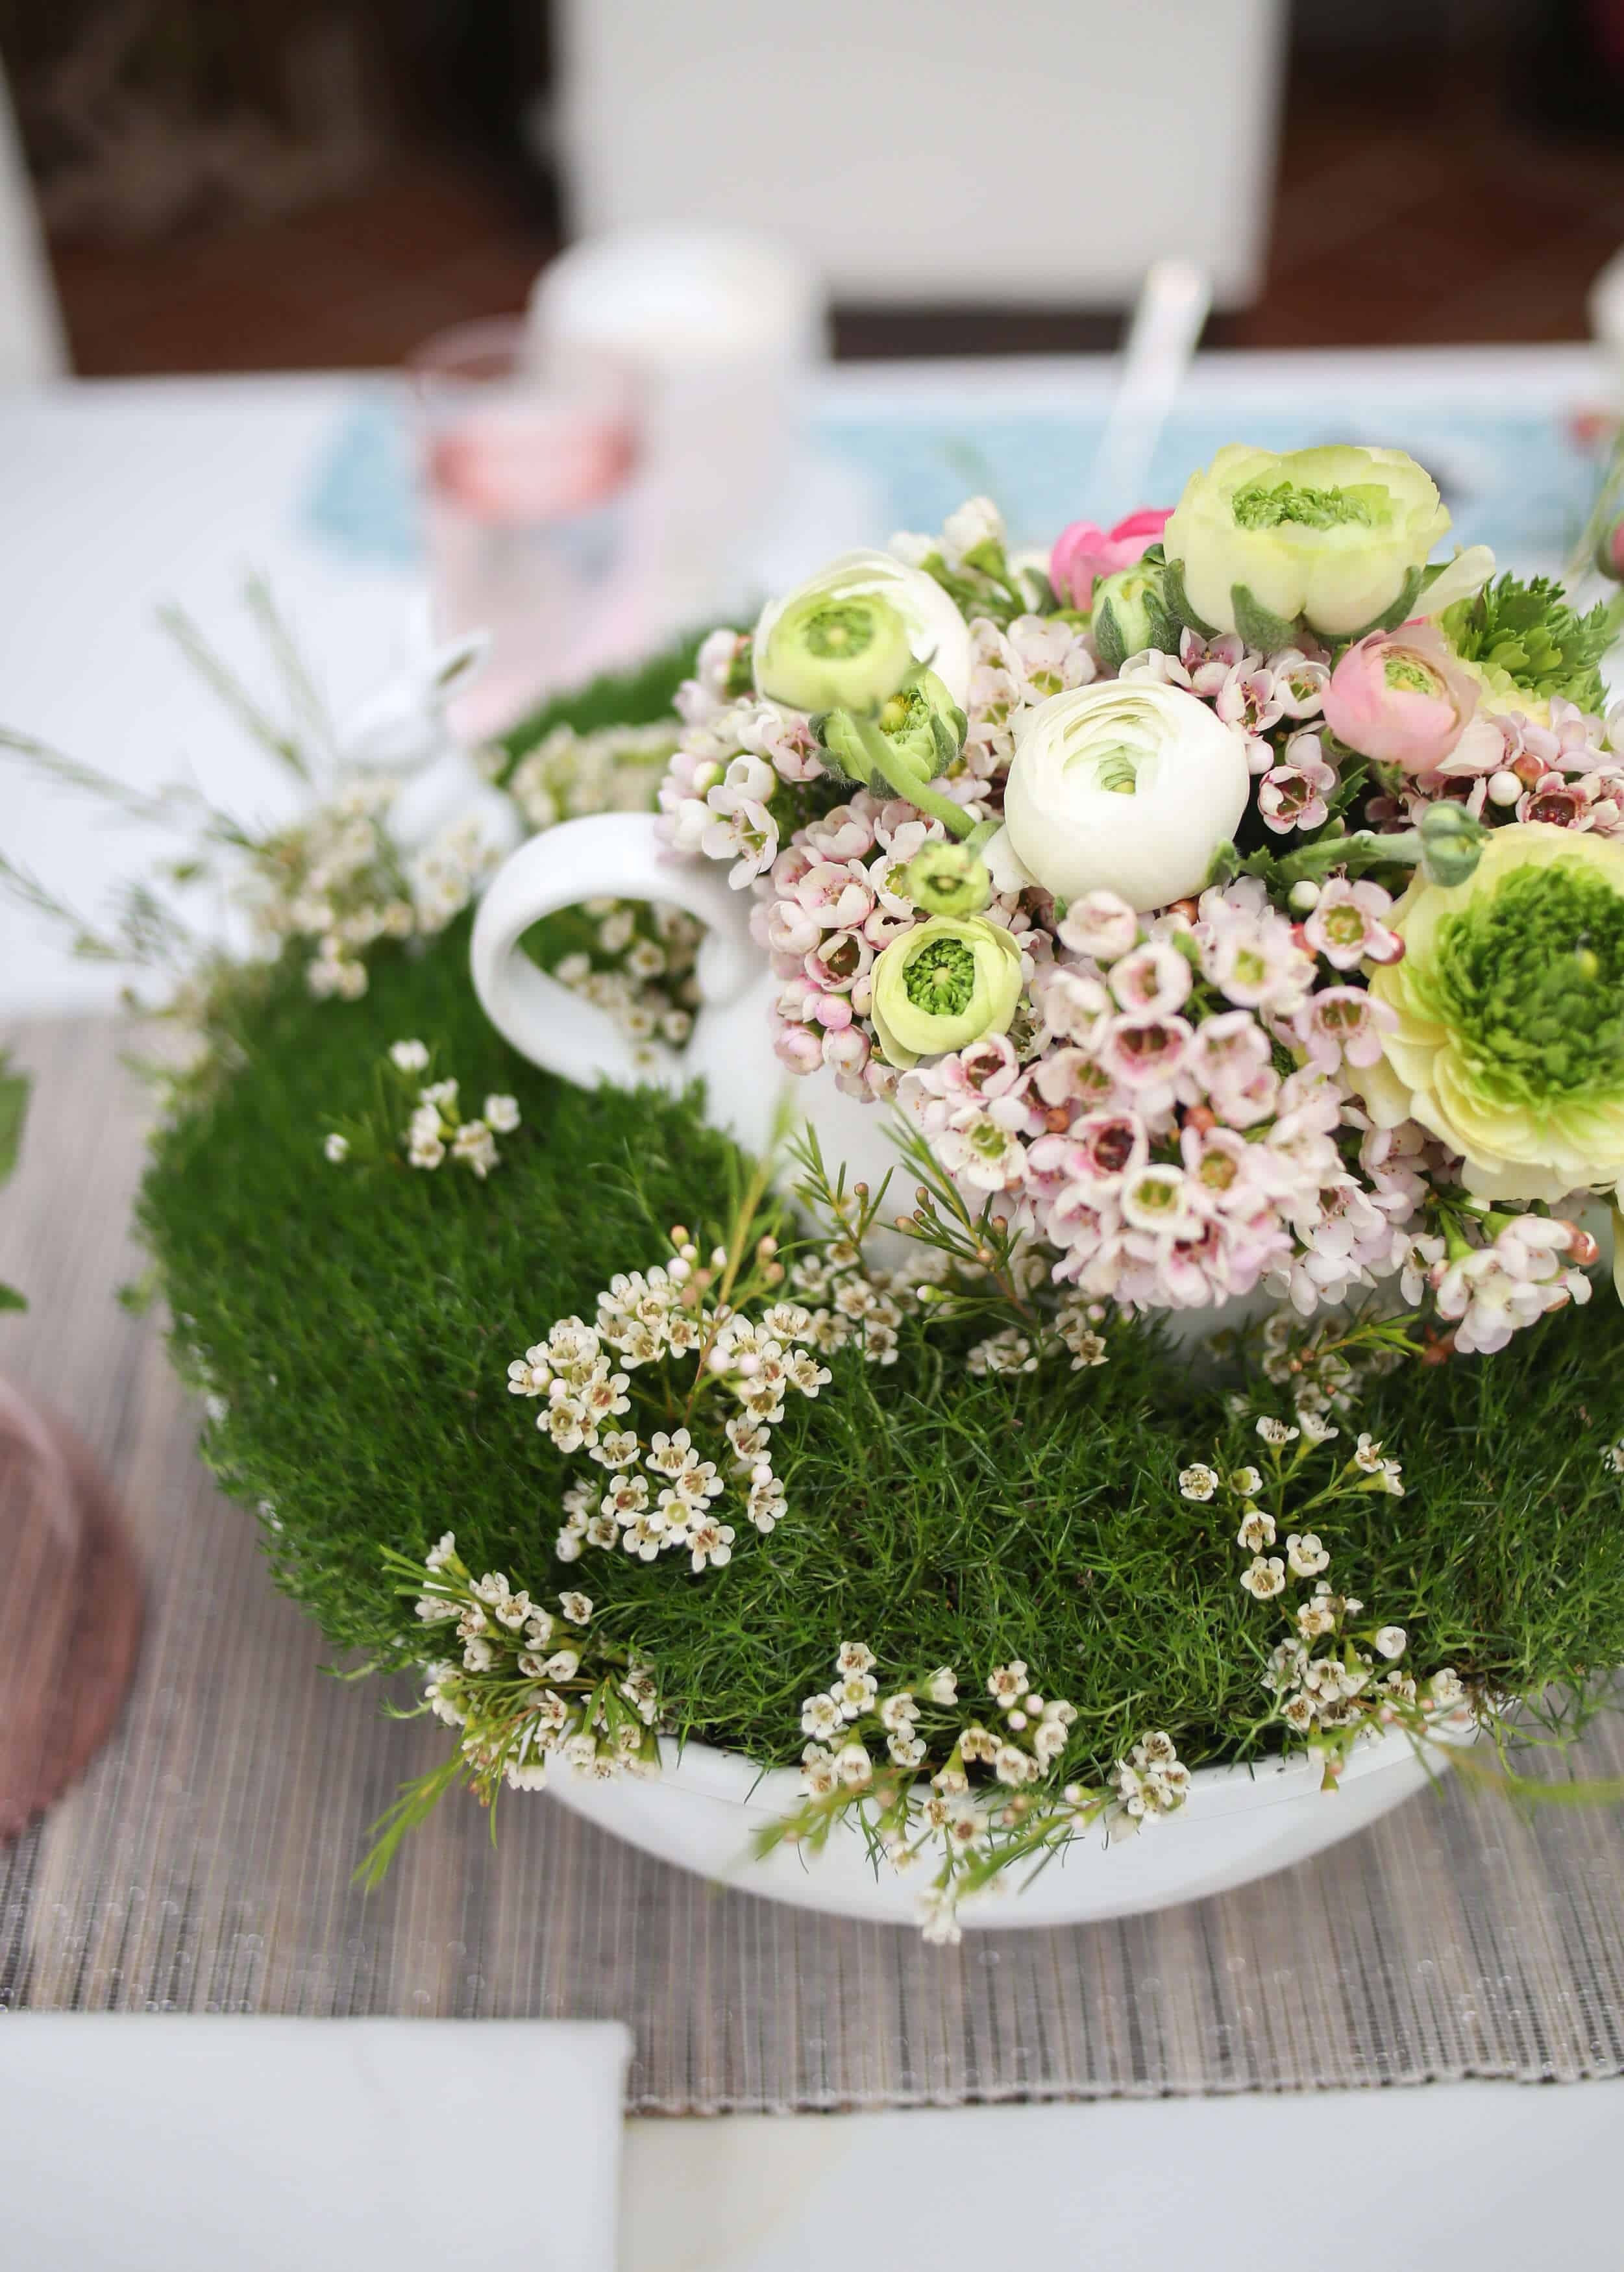 MOSS AND FLOWERS